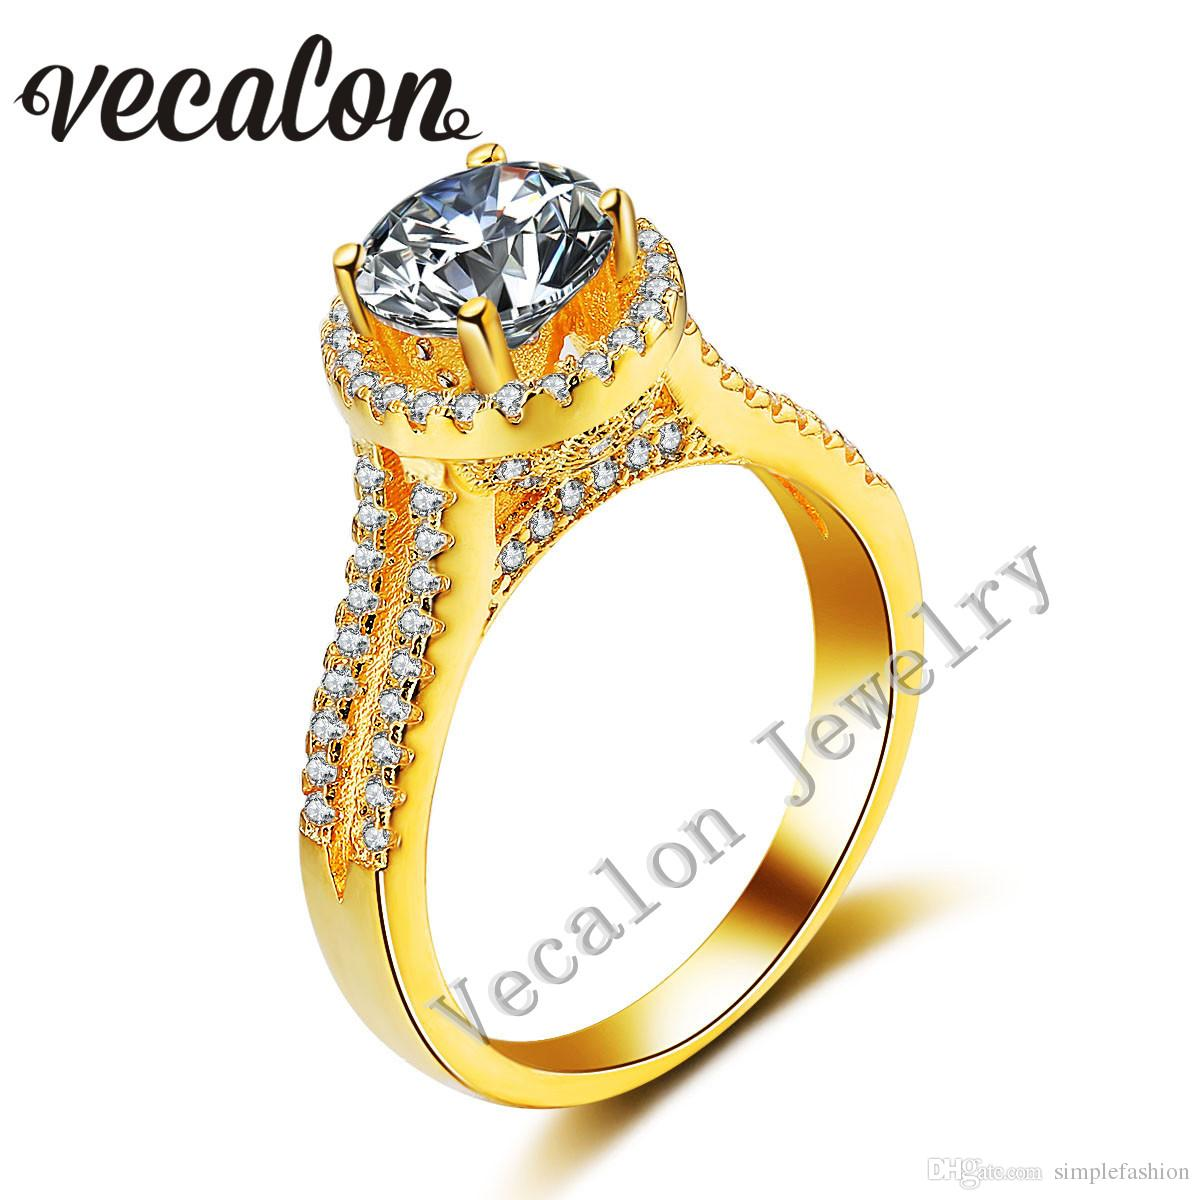 2018 vecalon yellow gold crown wedding ring for women round 3ct simulated diamond cz 925 sterling silver female engagement band ring from simplefashion - Crown Wedding Ring